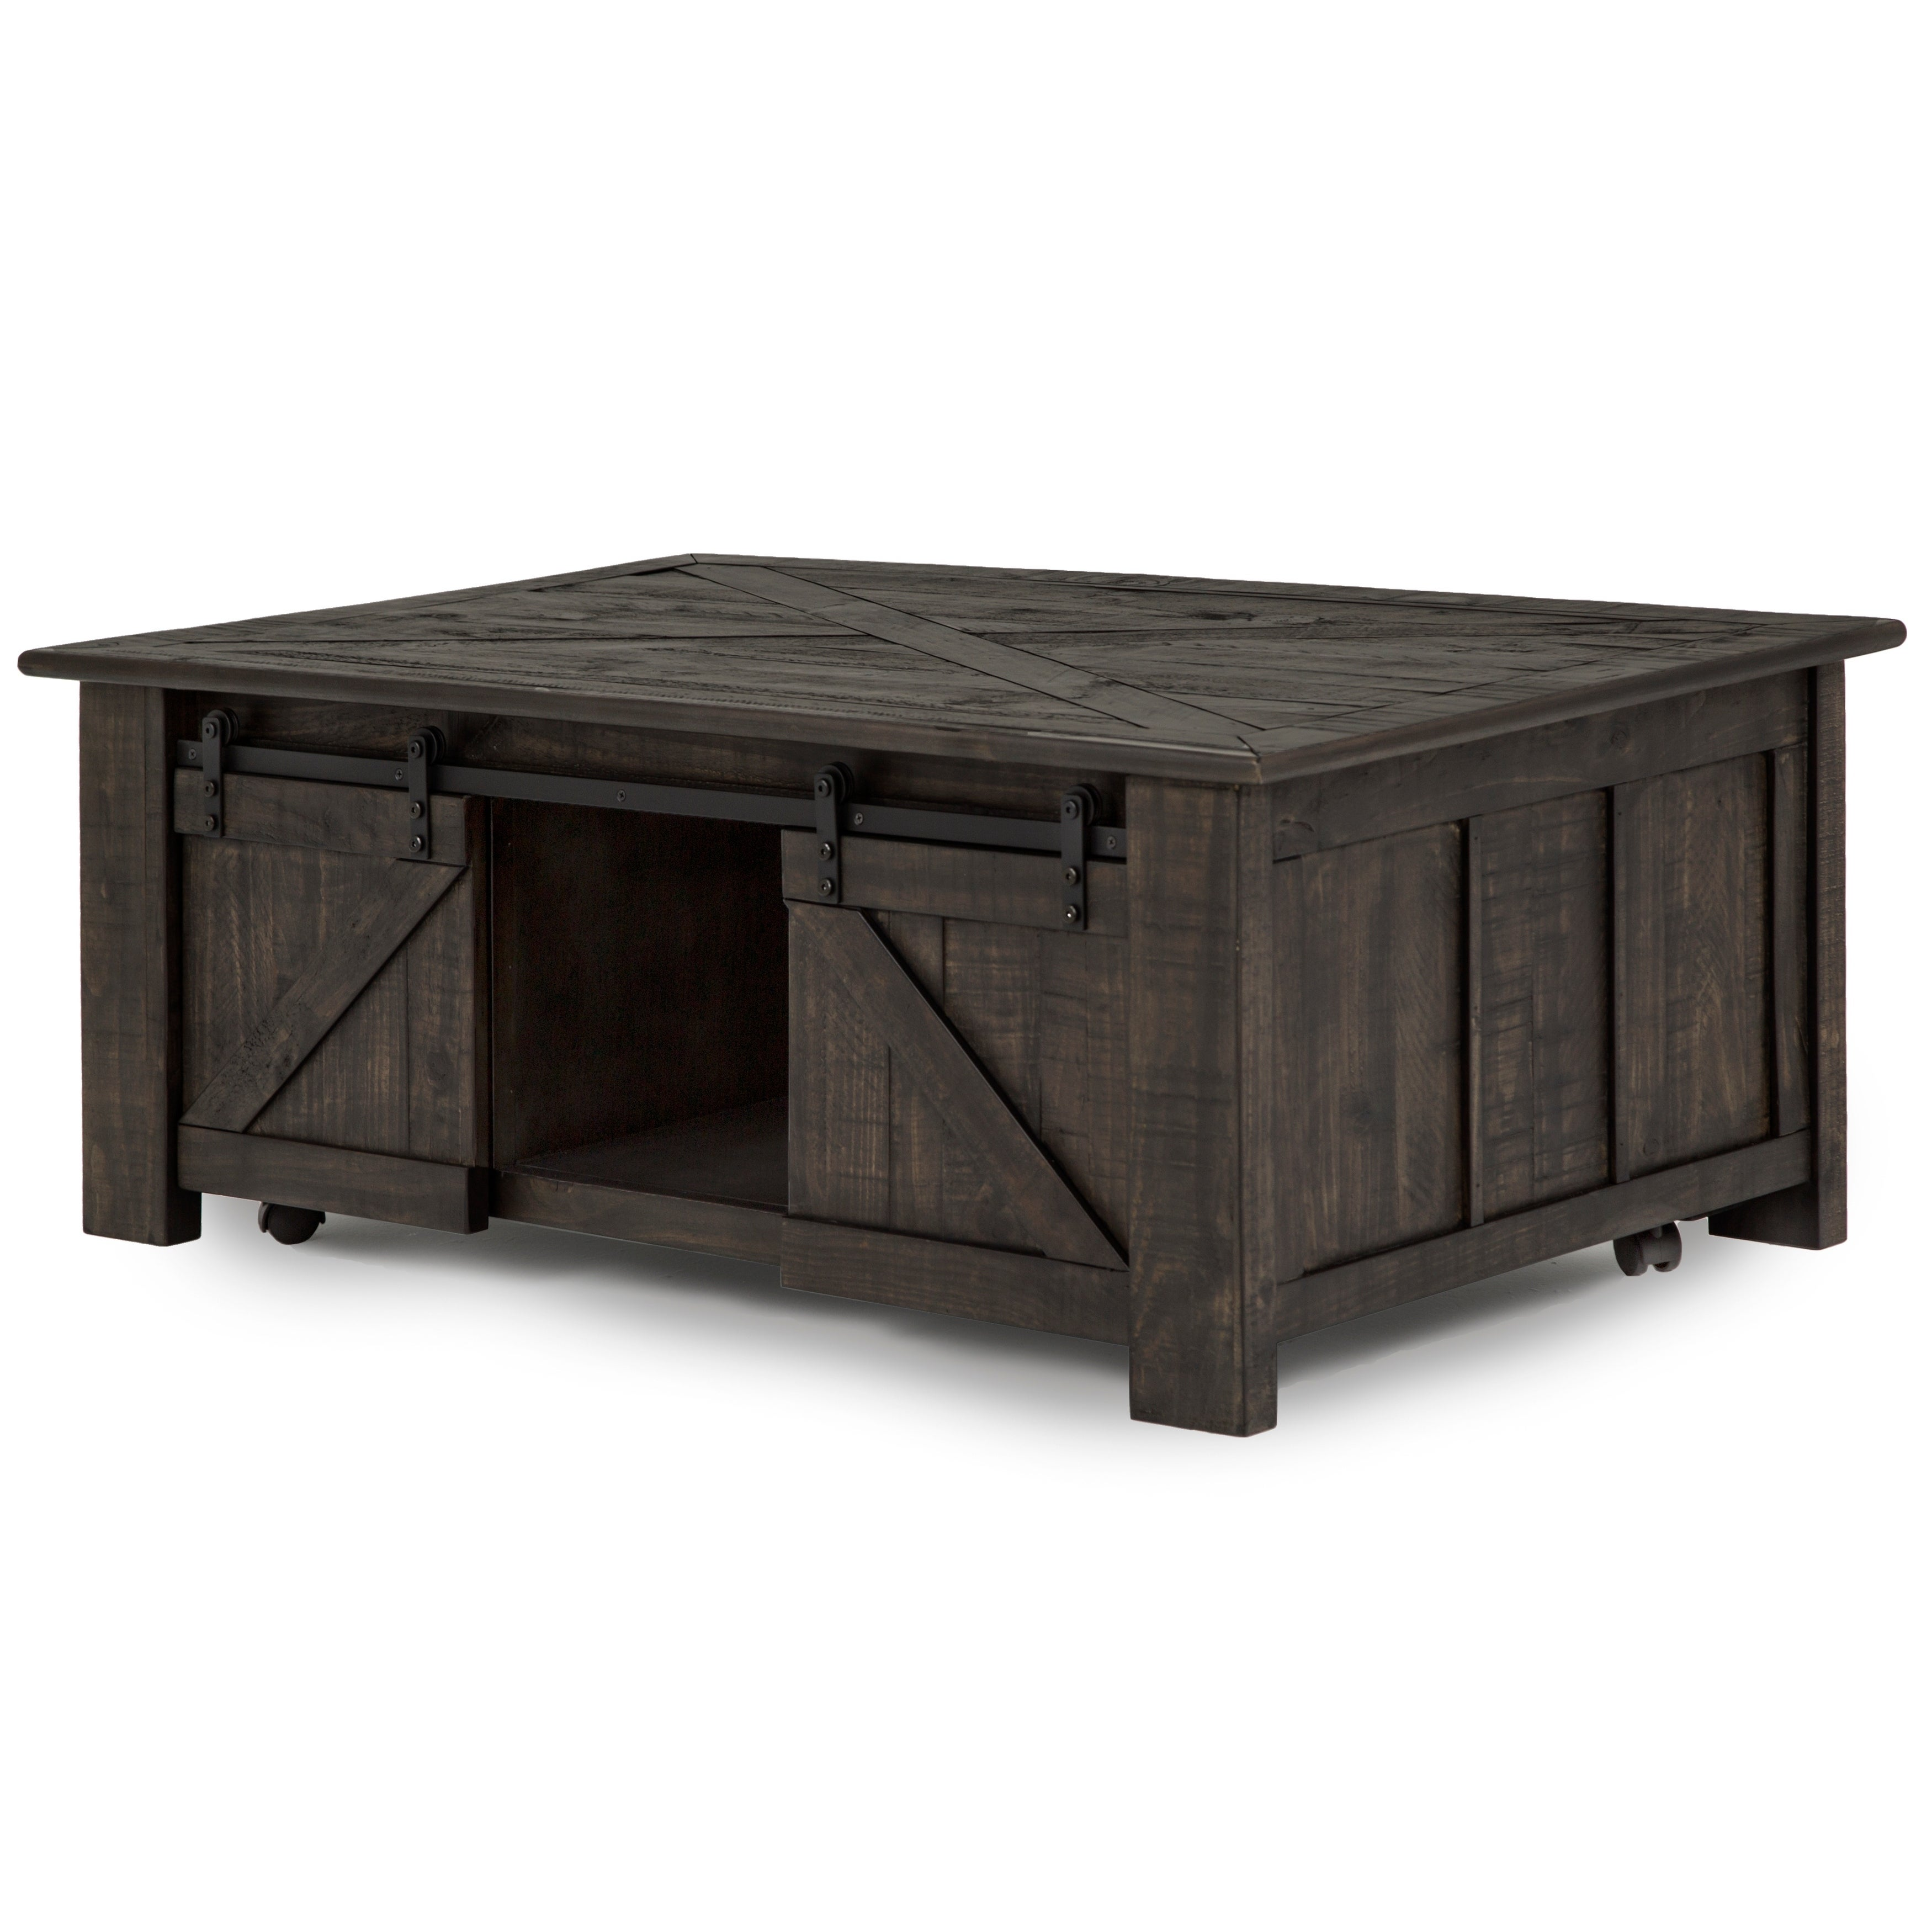 Lift Top Coffee Table Rustic 5